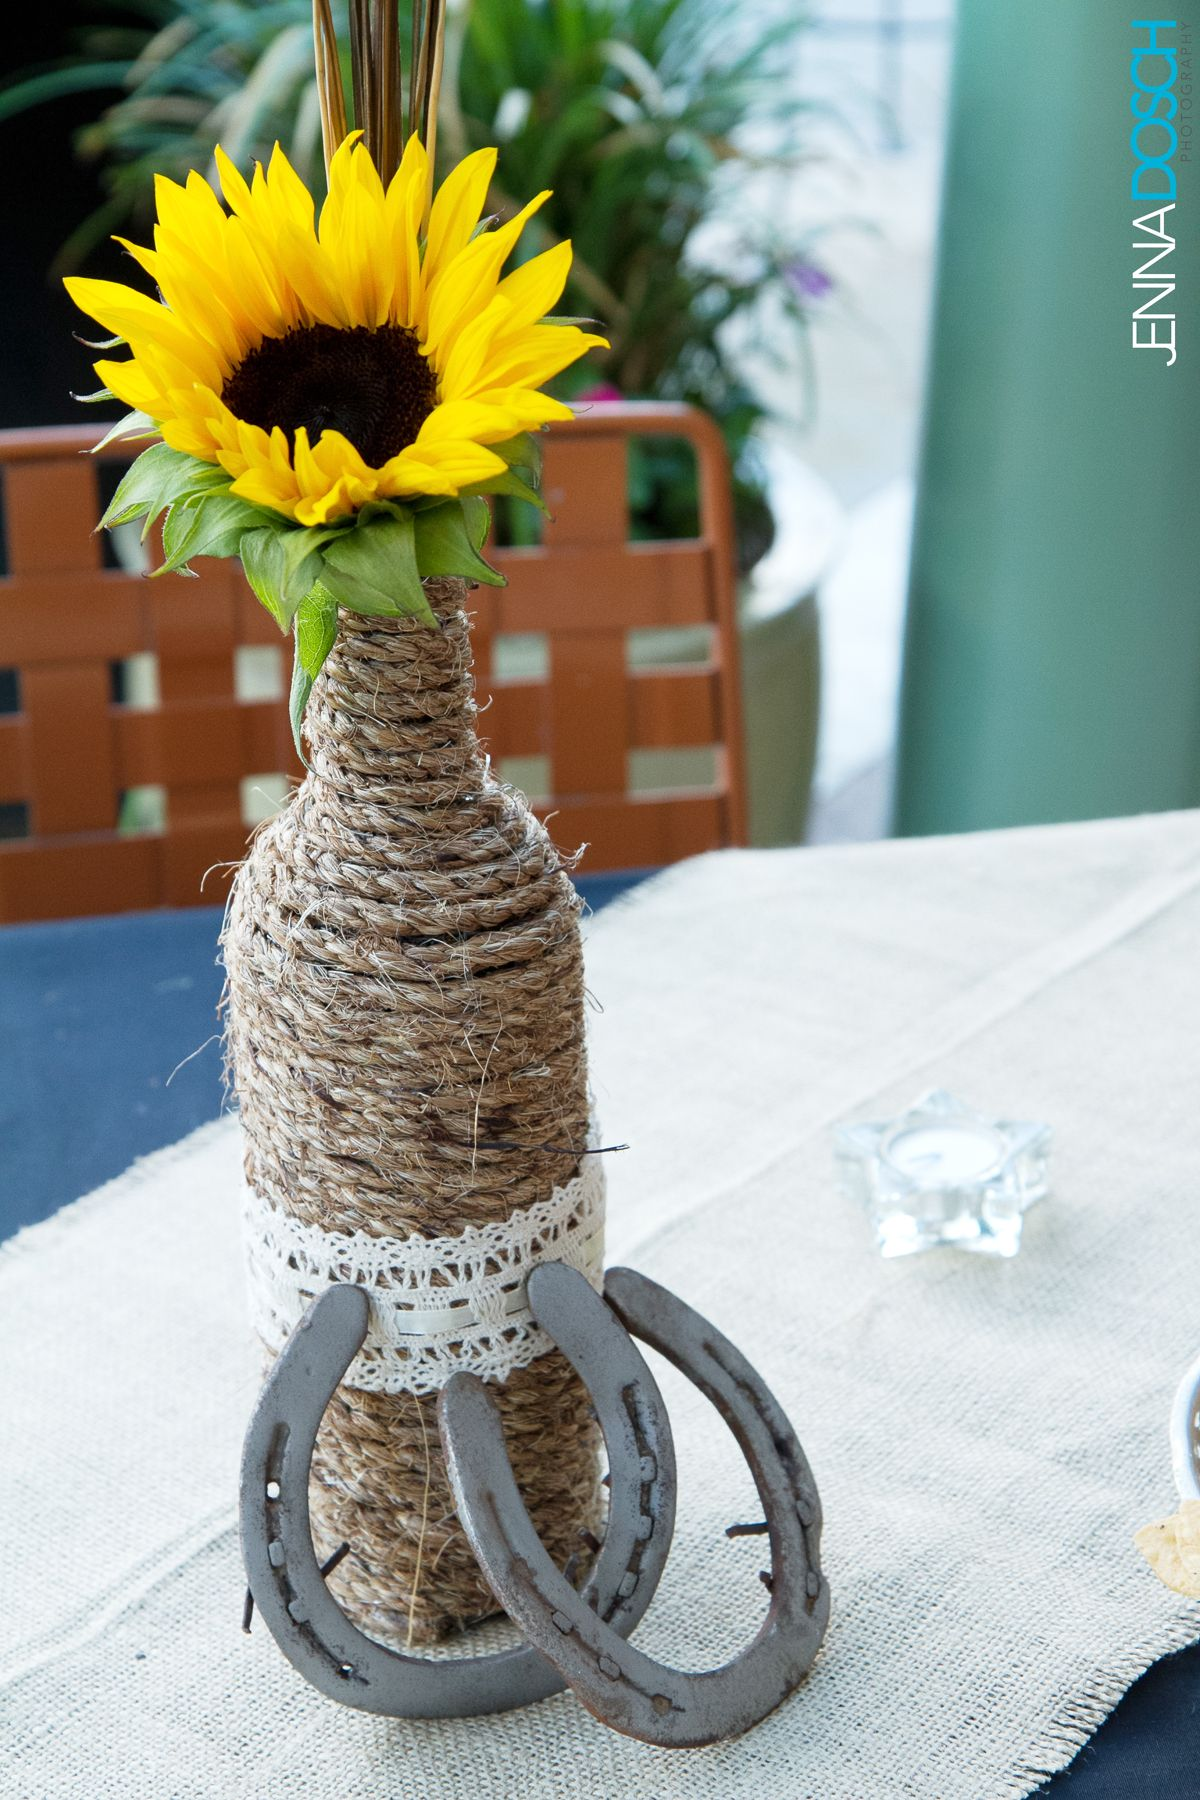 Diy sunflower wedding decorations   Creative Floral Designs with Sunflowers Sunny Summer Table